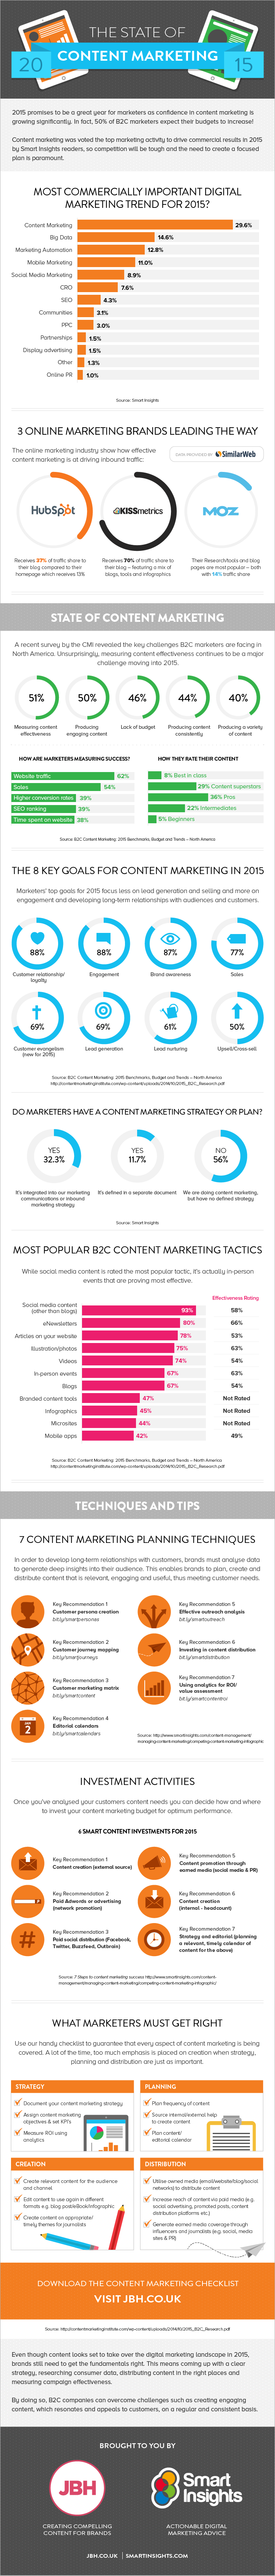 State-of-Content-Marketing-201511